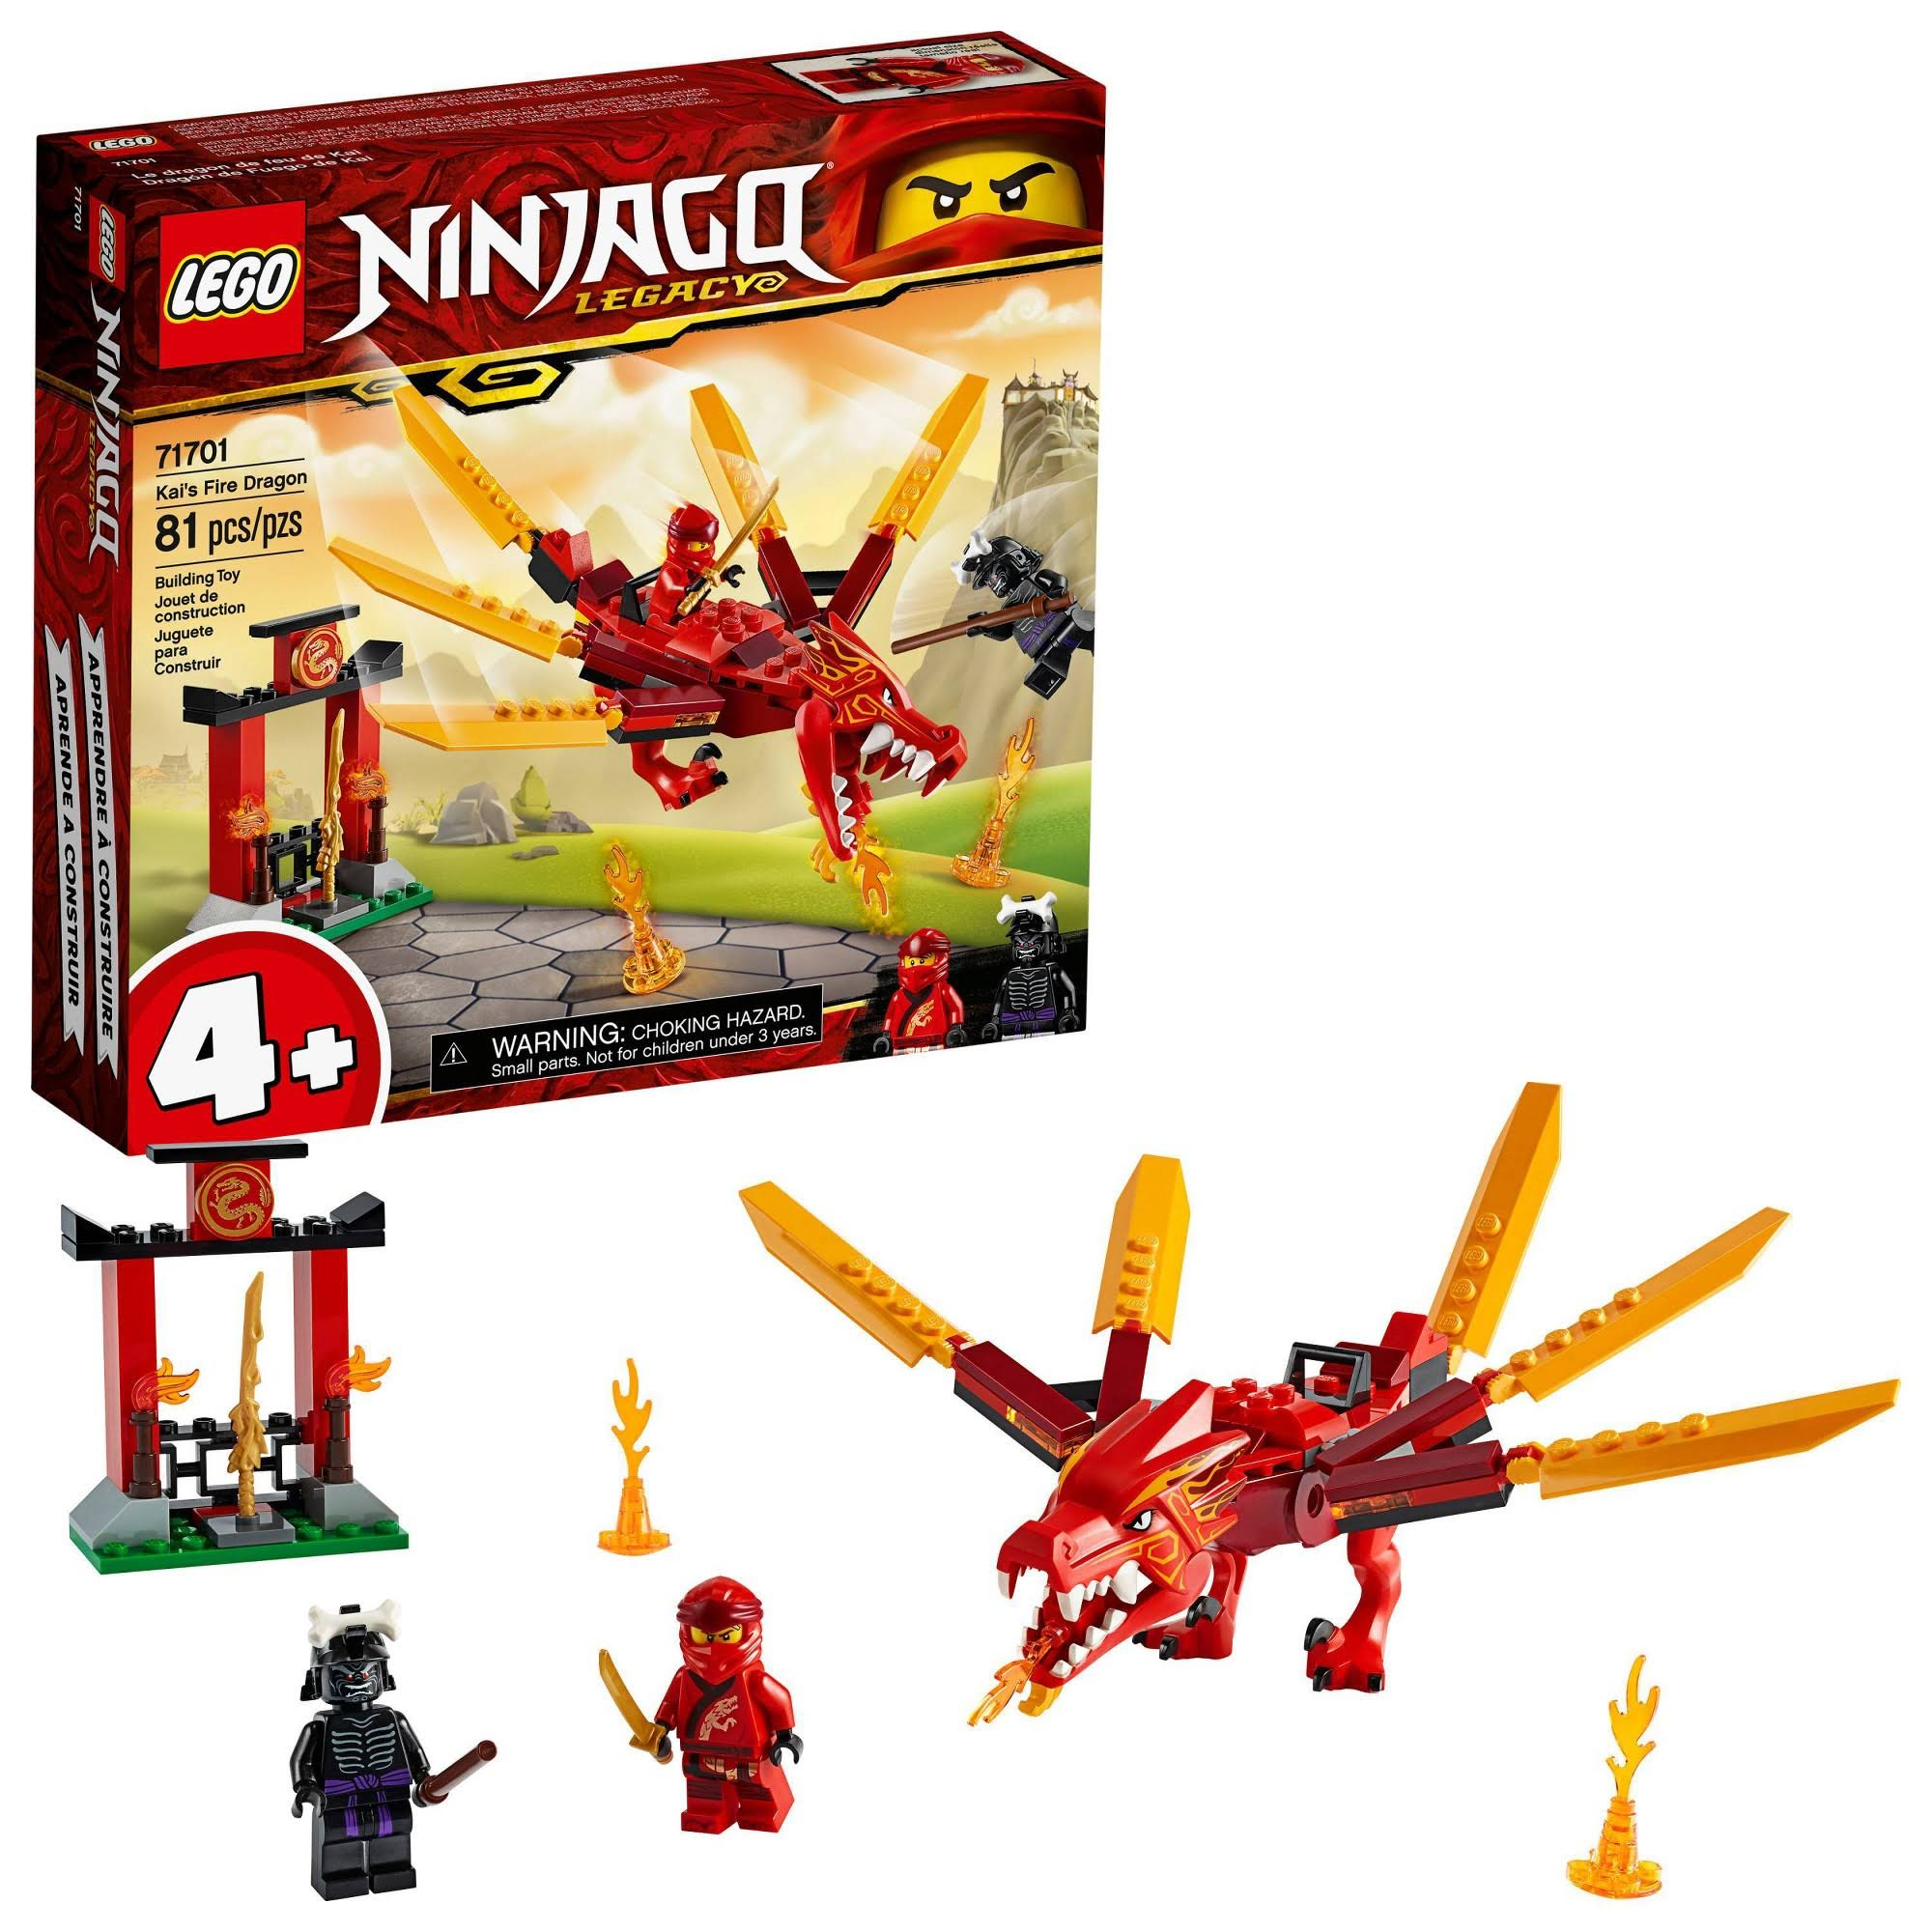 Lego Ninjago Legacy Kai's Fire Dragon 71701 Building Kit